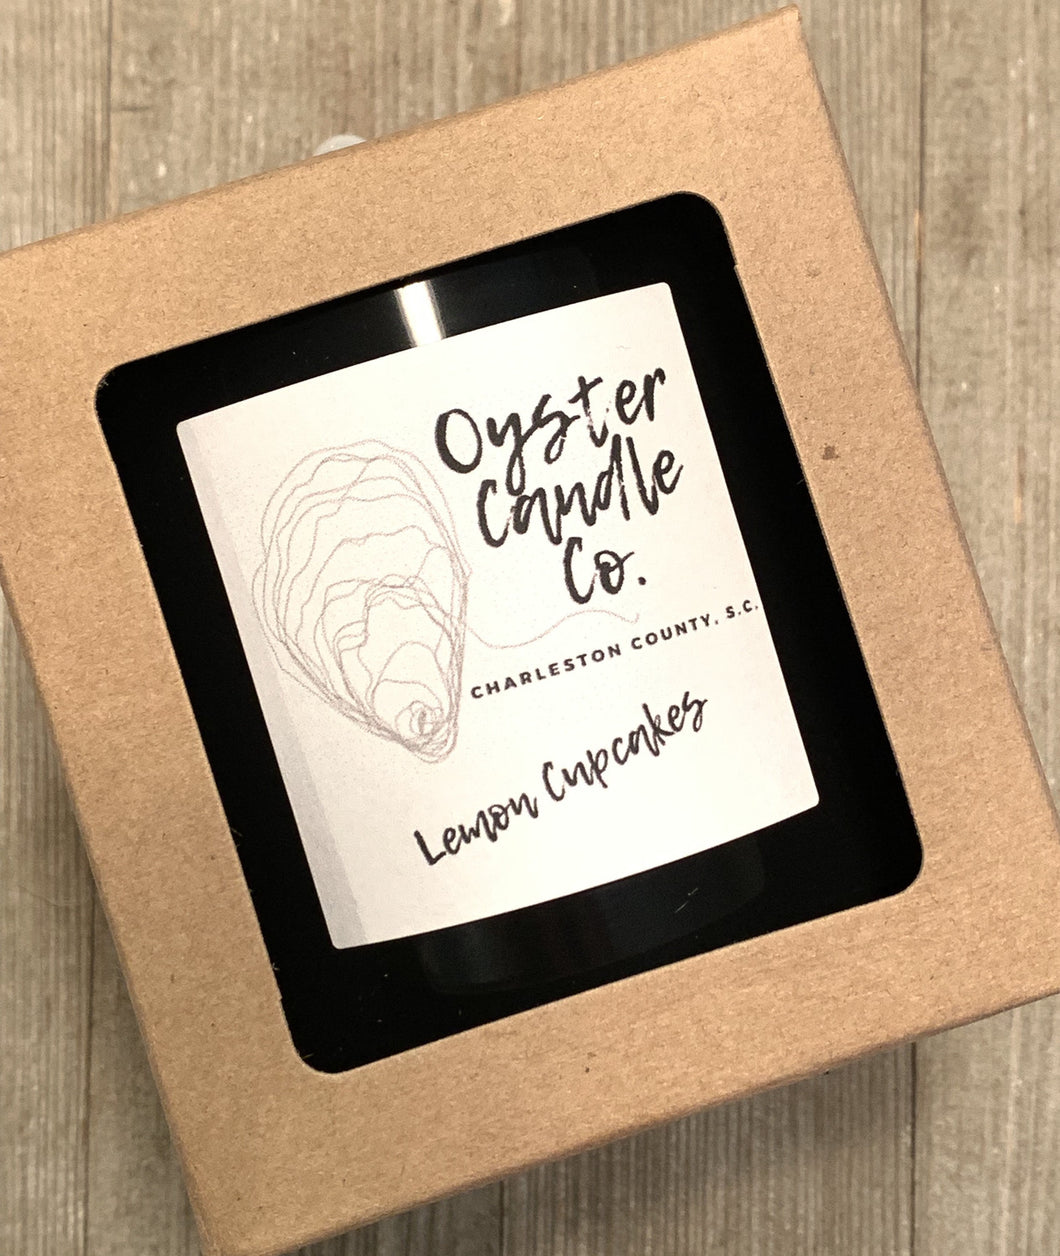 Oyster Candle Company - Lemon Cupcakes Candle